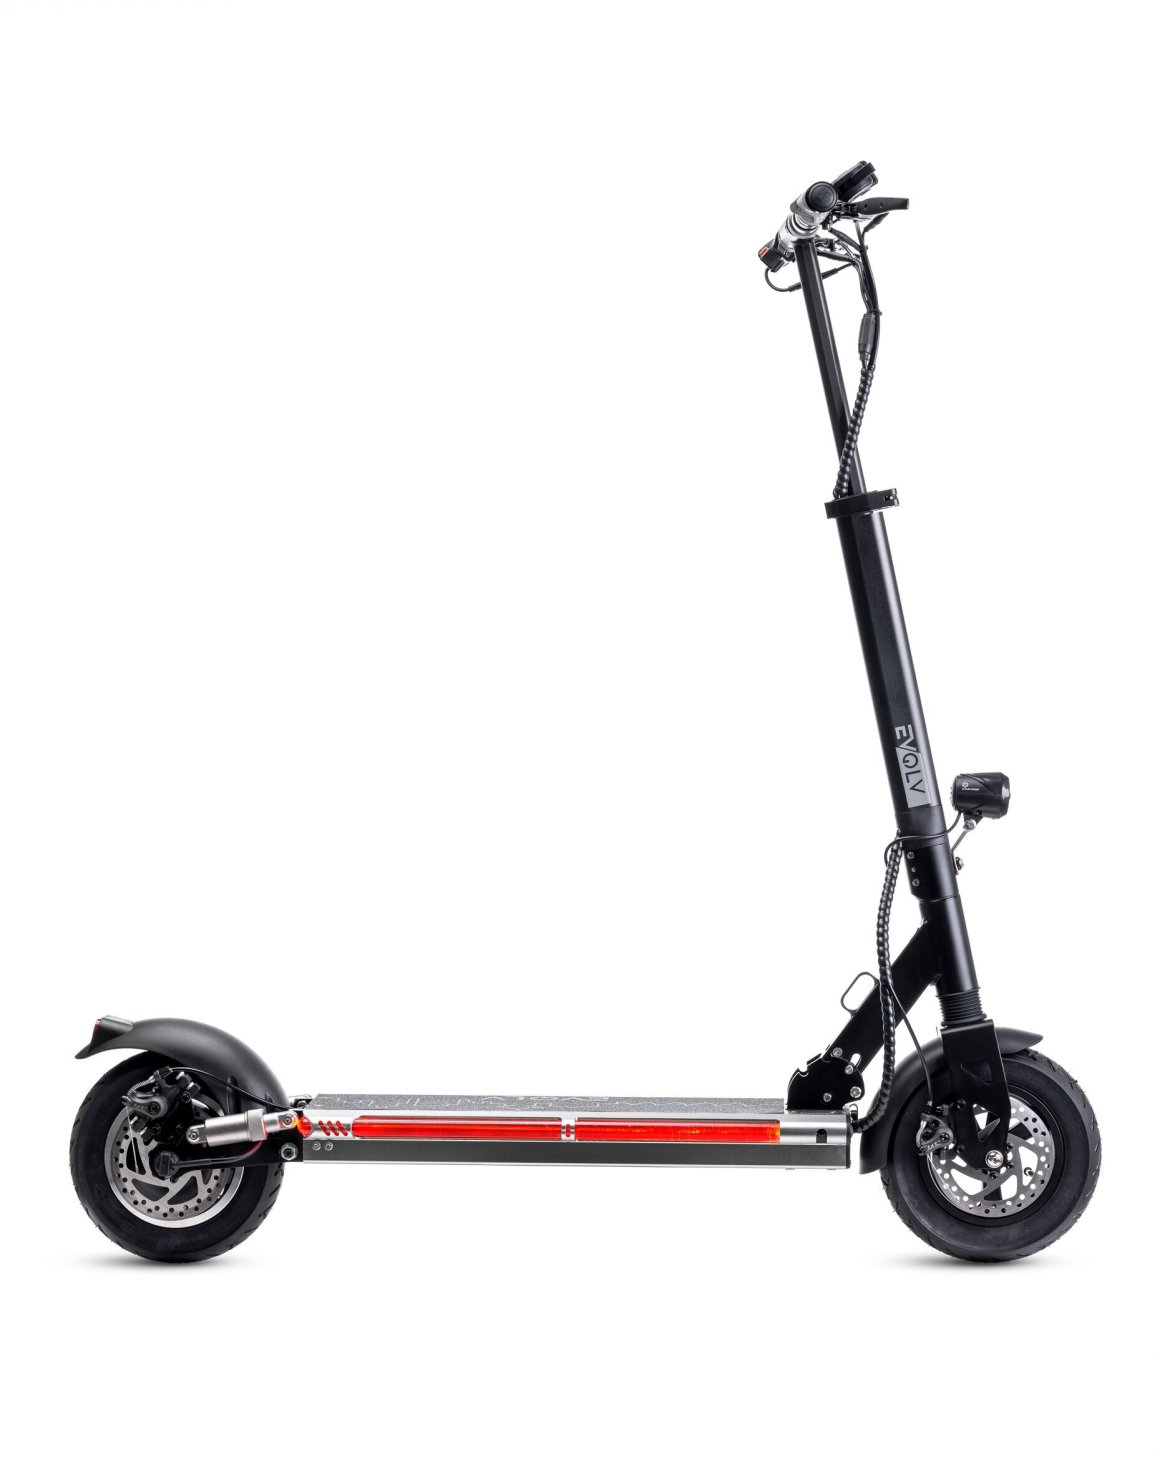 electric scooter, electric scooter in canada, electric scooter canada, electric scooter razor, electric scooter for adults, electric scooters for adults, electric scooter toronto, electric scooter adult, electric scooter vancouver, electric scooter for kids, electric scooter kids, electric scooter canadian tire, electric scooter bike, electric scooter on sale, electric scooter for sale, electric scooter sale, electric scooter ottawa, electric scooter off road, electric scooter with seat, electric scooter gio, electric scooter edmonton, electric scooter amazon, electric scooter walmart, electric scooter costco, electric scooter 3 wheel, seat for electric scooter, electric scooter best buy, electric scooter moped, electric scooter xiaomi, electric scooter on amazon, electric scooter price, electric scooter segway, electric scooter rental, electric scooter battery, electric scooter and motorcycle, electric scooter victoria bc, electric scooter surrey, electric scooter motorcycle, electric scooter vespa, electric scooter rental vancouver, electric scooter kijiji, electric scooter one wheel, electric scooter halifax, electric scooter motor, electric scooter parts, electric scooter reviews, electric scooter near me, electric scooter kelowna, electric scooter 4 wheel, how much electric scooter, electric scooter toys r us, electric scooter for adults with seat, electric scooter for sale near me, electric scooter charger, electric scooter honda, electric scooter walmart canada, electric scooter in india, charger for electric scooter, electric scooter repair, electric scooter guide, helmet for electric scooter, electric scooter diy, electric scooter bike canada, electric scooter bc, electric scooter accessories, electric scooter used for sale, electric scooter helmet, electric scooter girls, electric scooter price in canada, electric scooter victoria, electric scooter with pedals, electric scooter amazon.ca, electric scooter e200, electric scooter cost, electric scooter 1000w